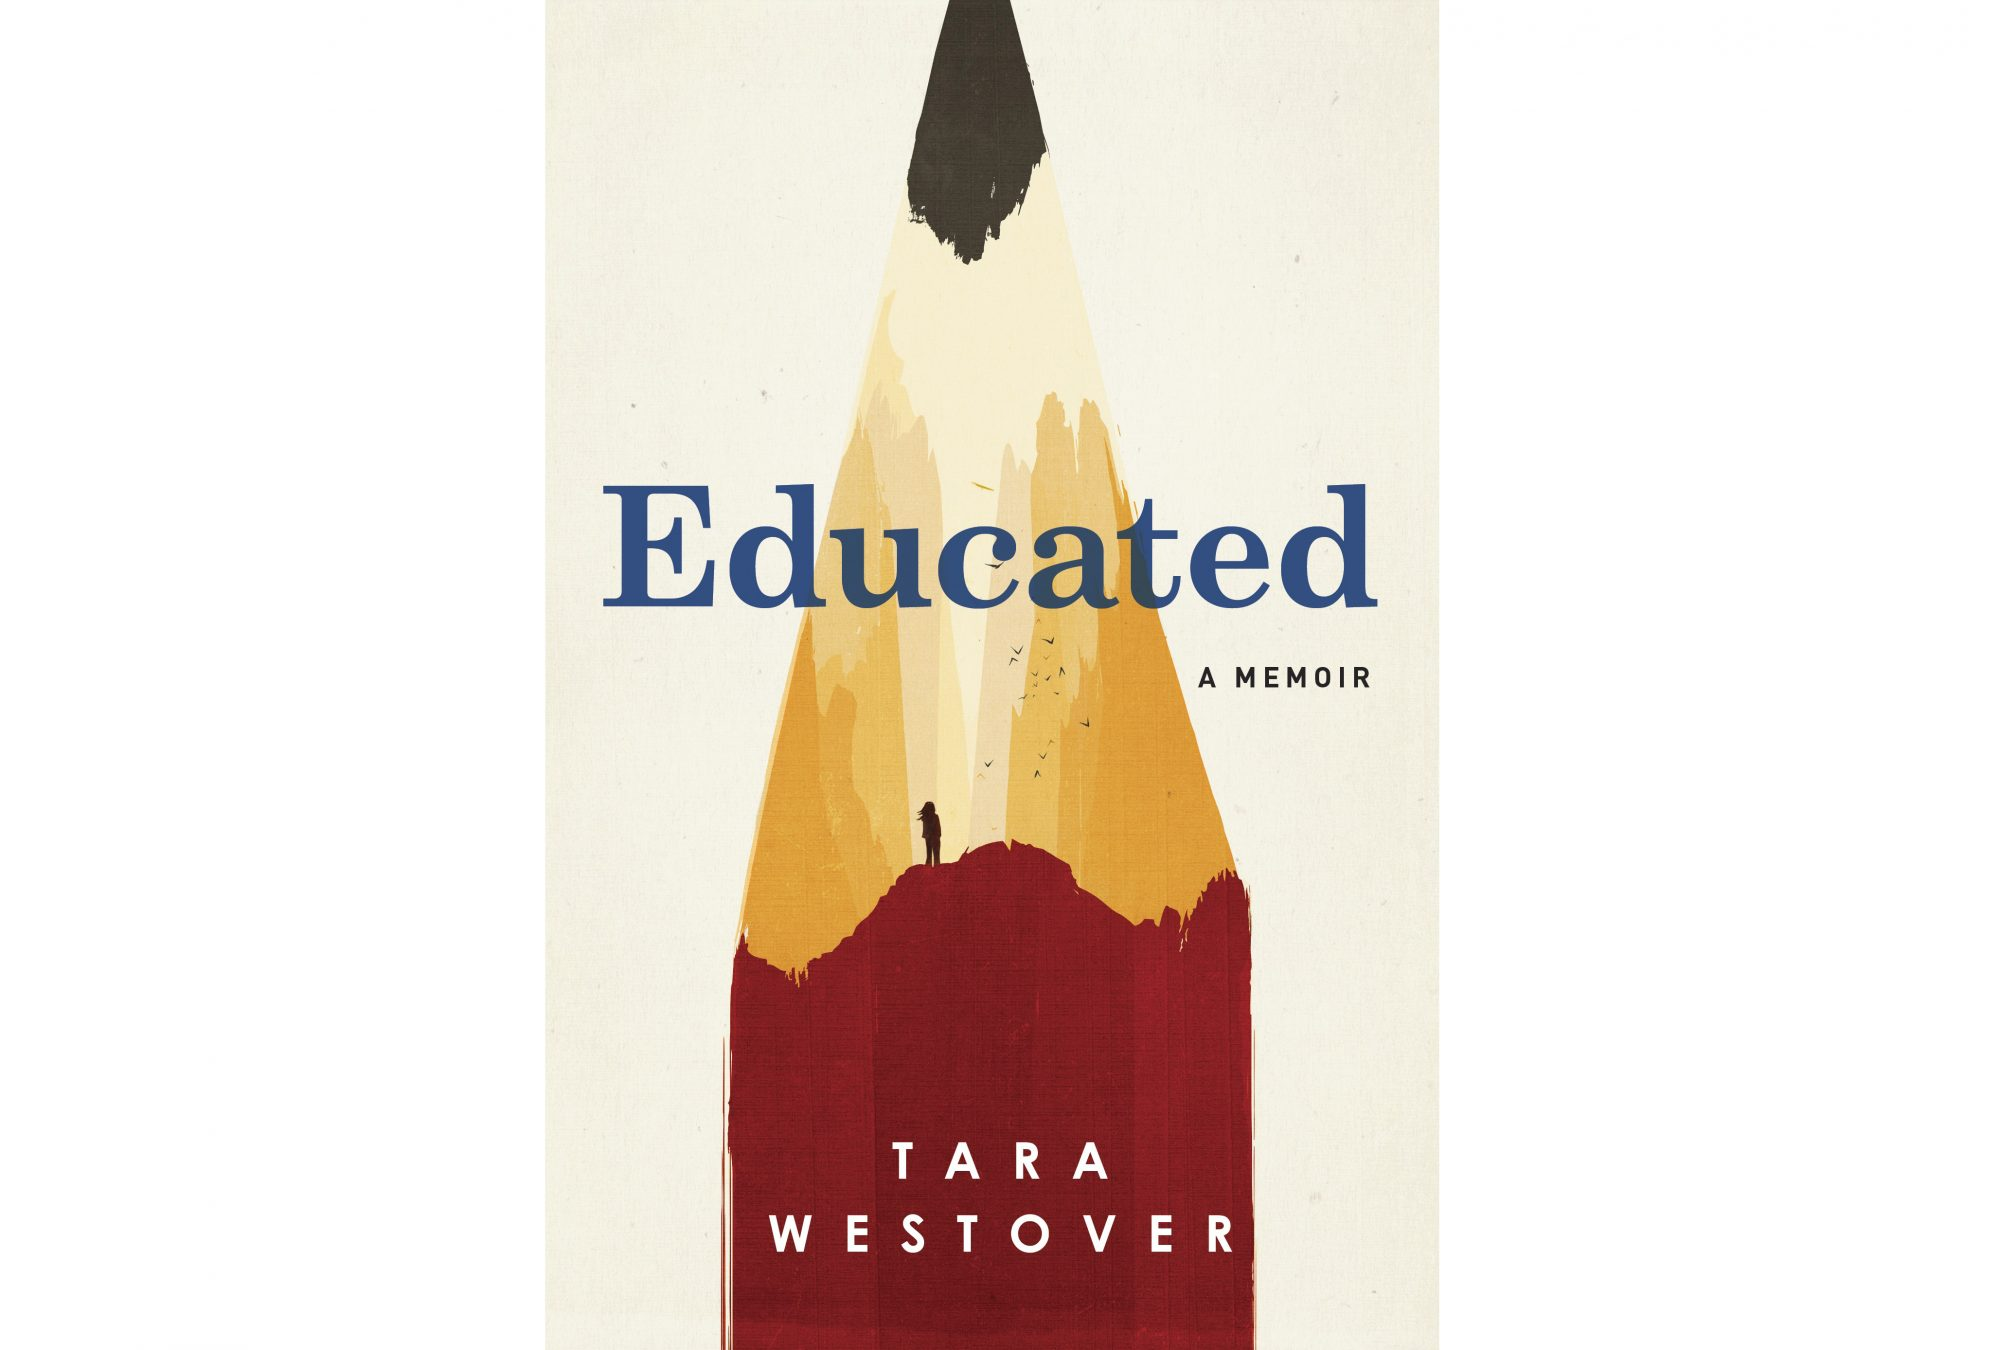 Educated, by Tara Westover